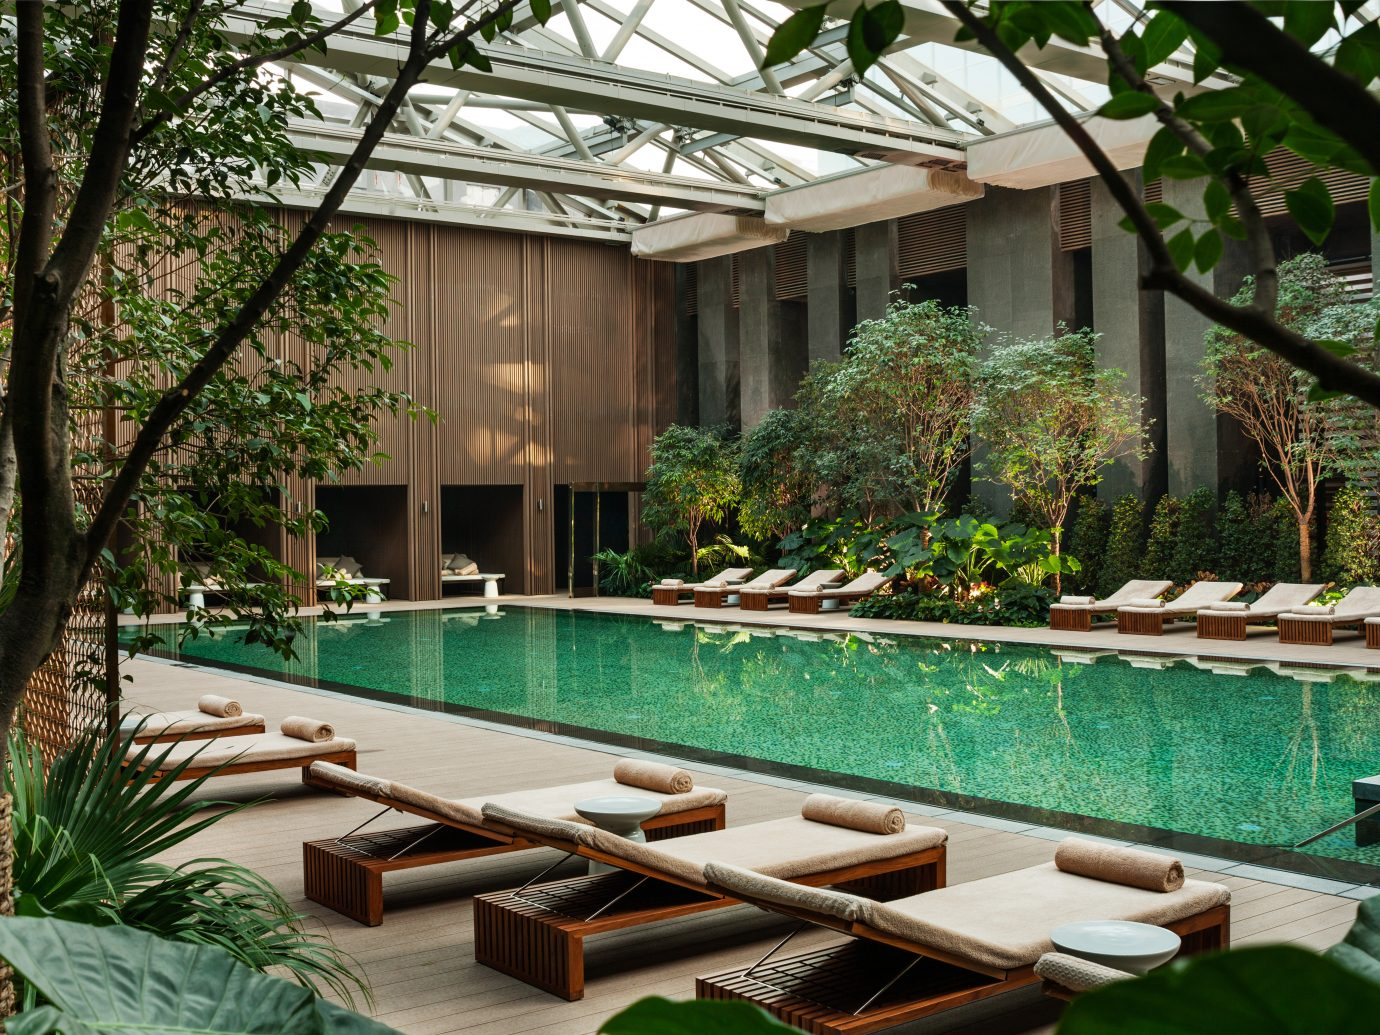 View of the pool at Rosewood Beijing